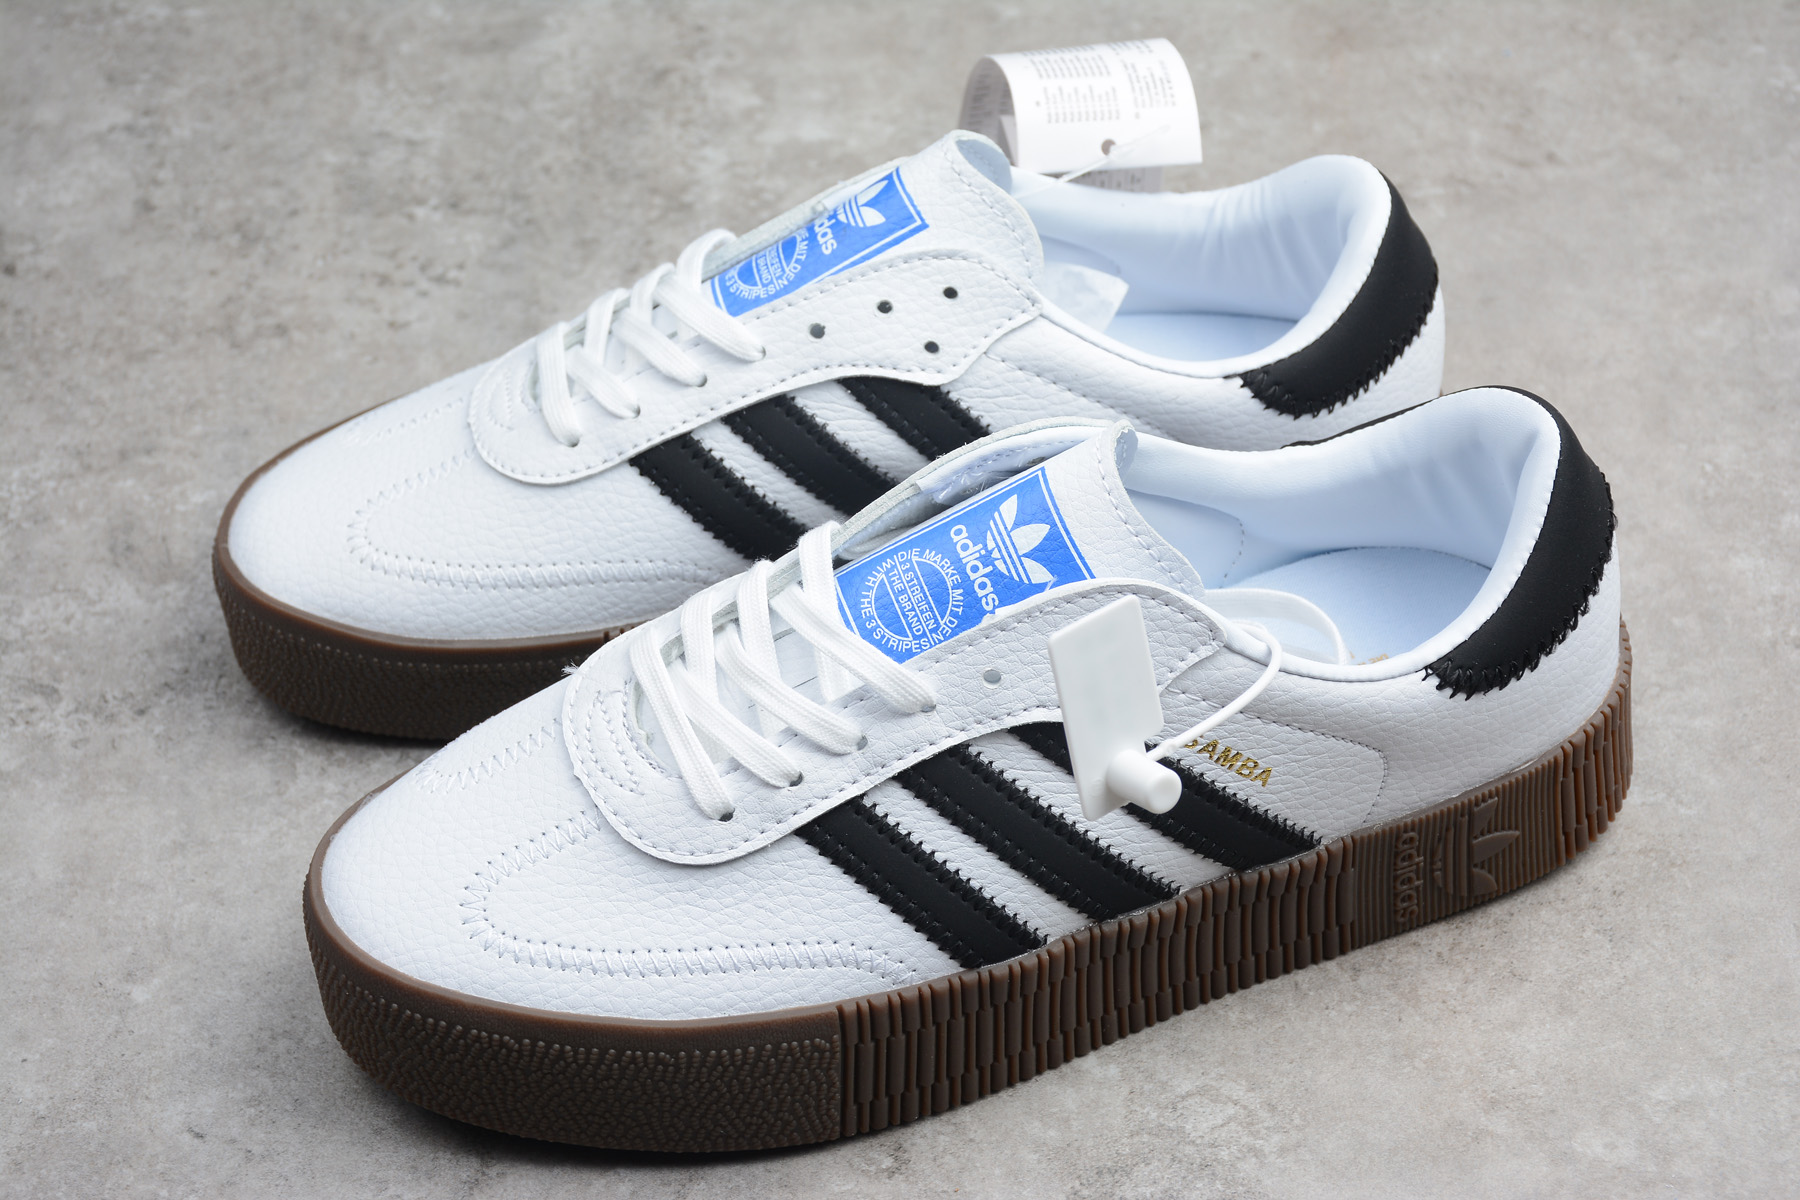 adidas Originals Sambarose White/Black/Gum AQ1134